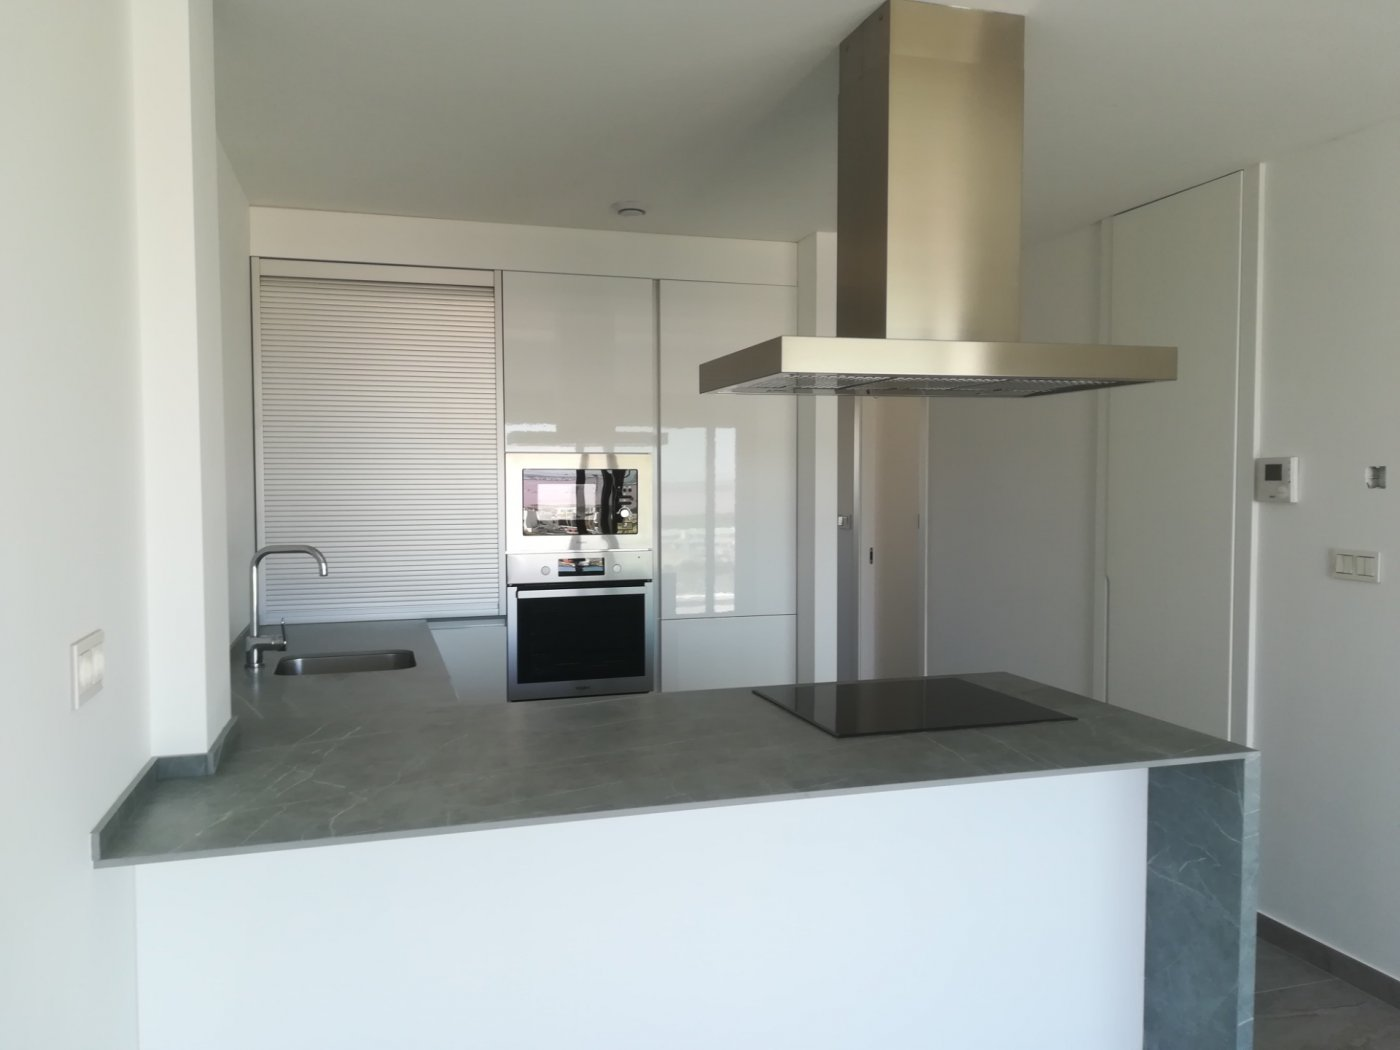 Gallery Image 11 of Lovely new build 2 bed penthouse with 2 bath and 58 m2 roof terrasse